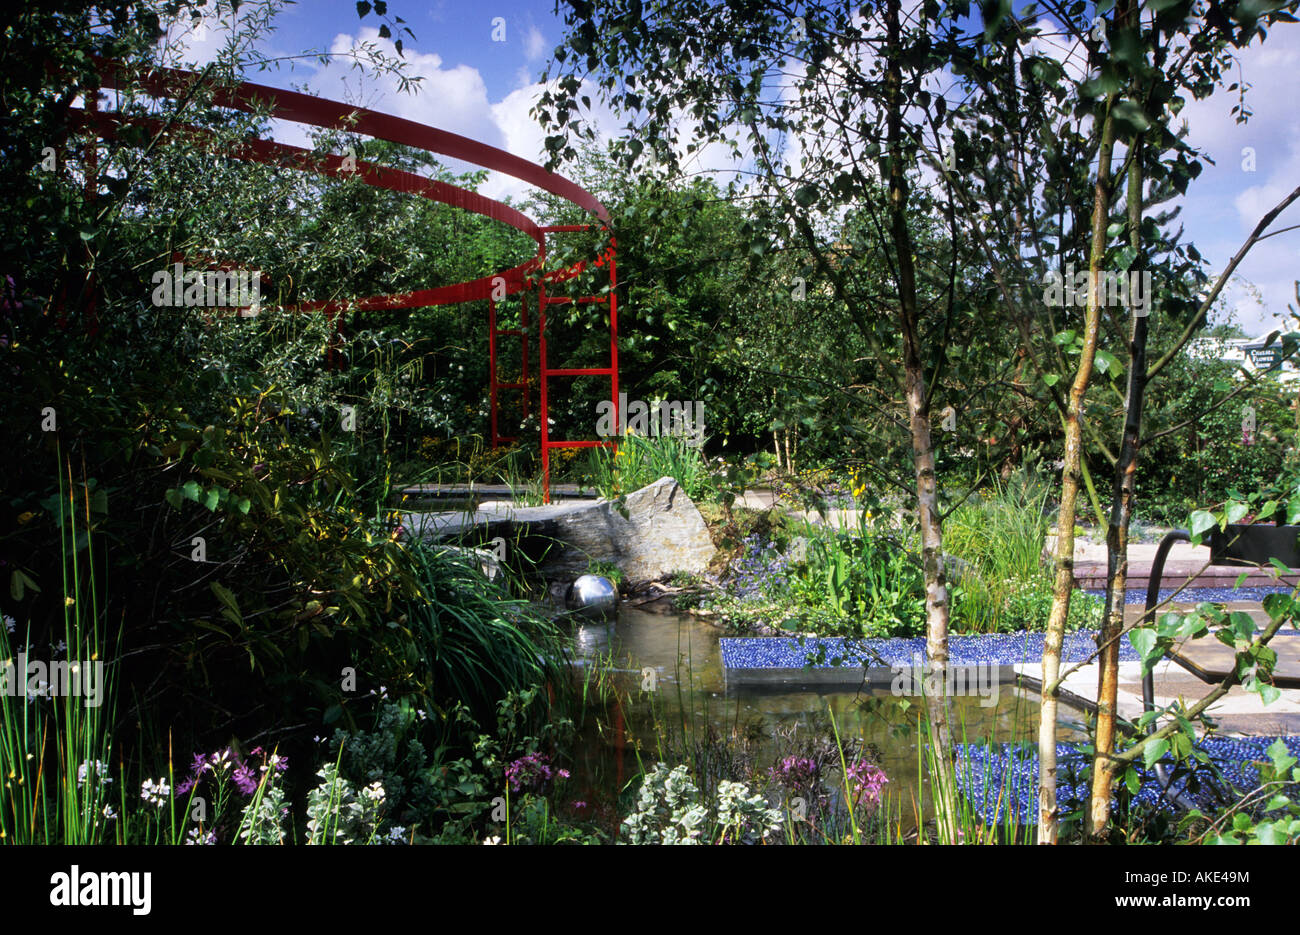 Chelsea FS 2000 design David Stevens contemporary garden elements within traditional woodland country garden - Stock Image